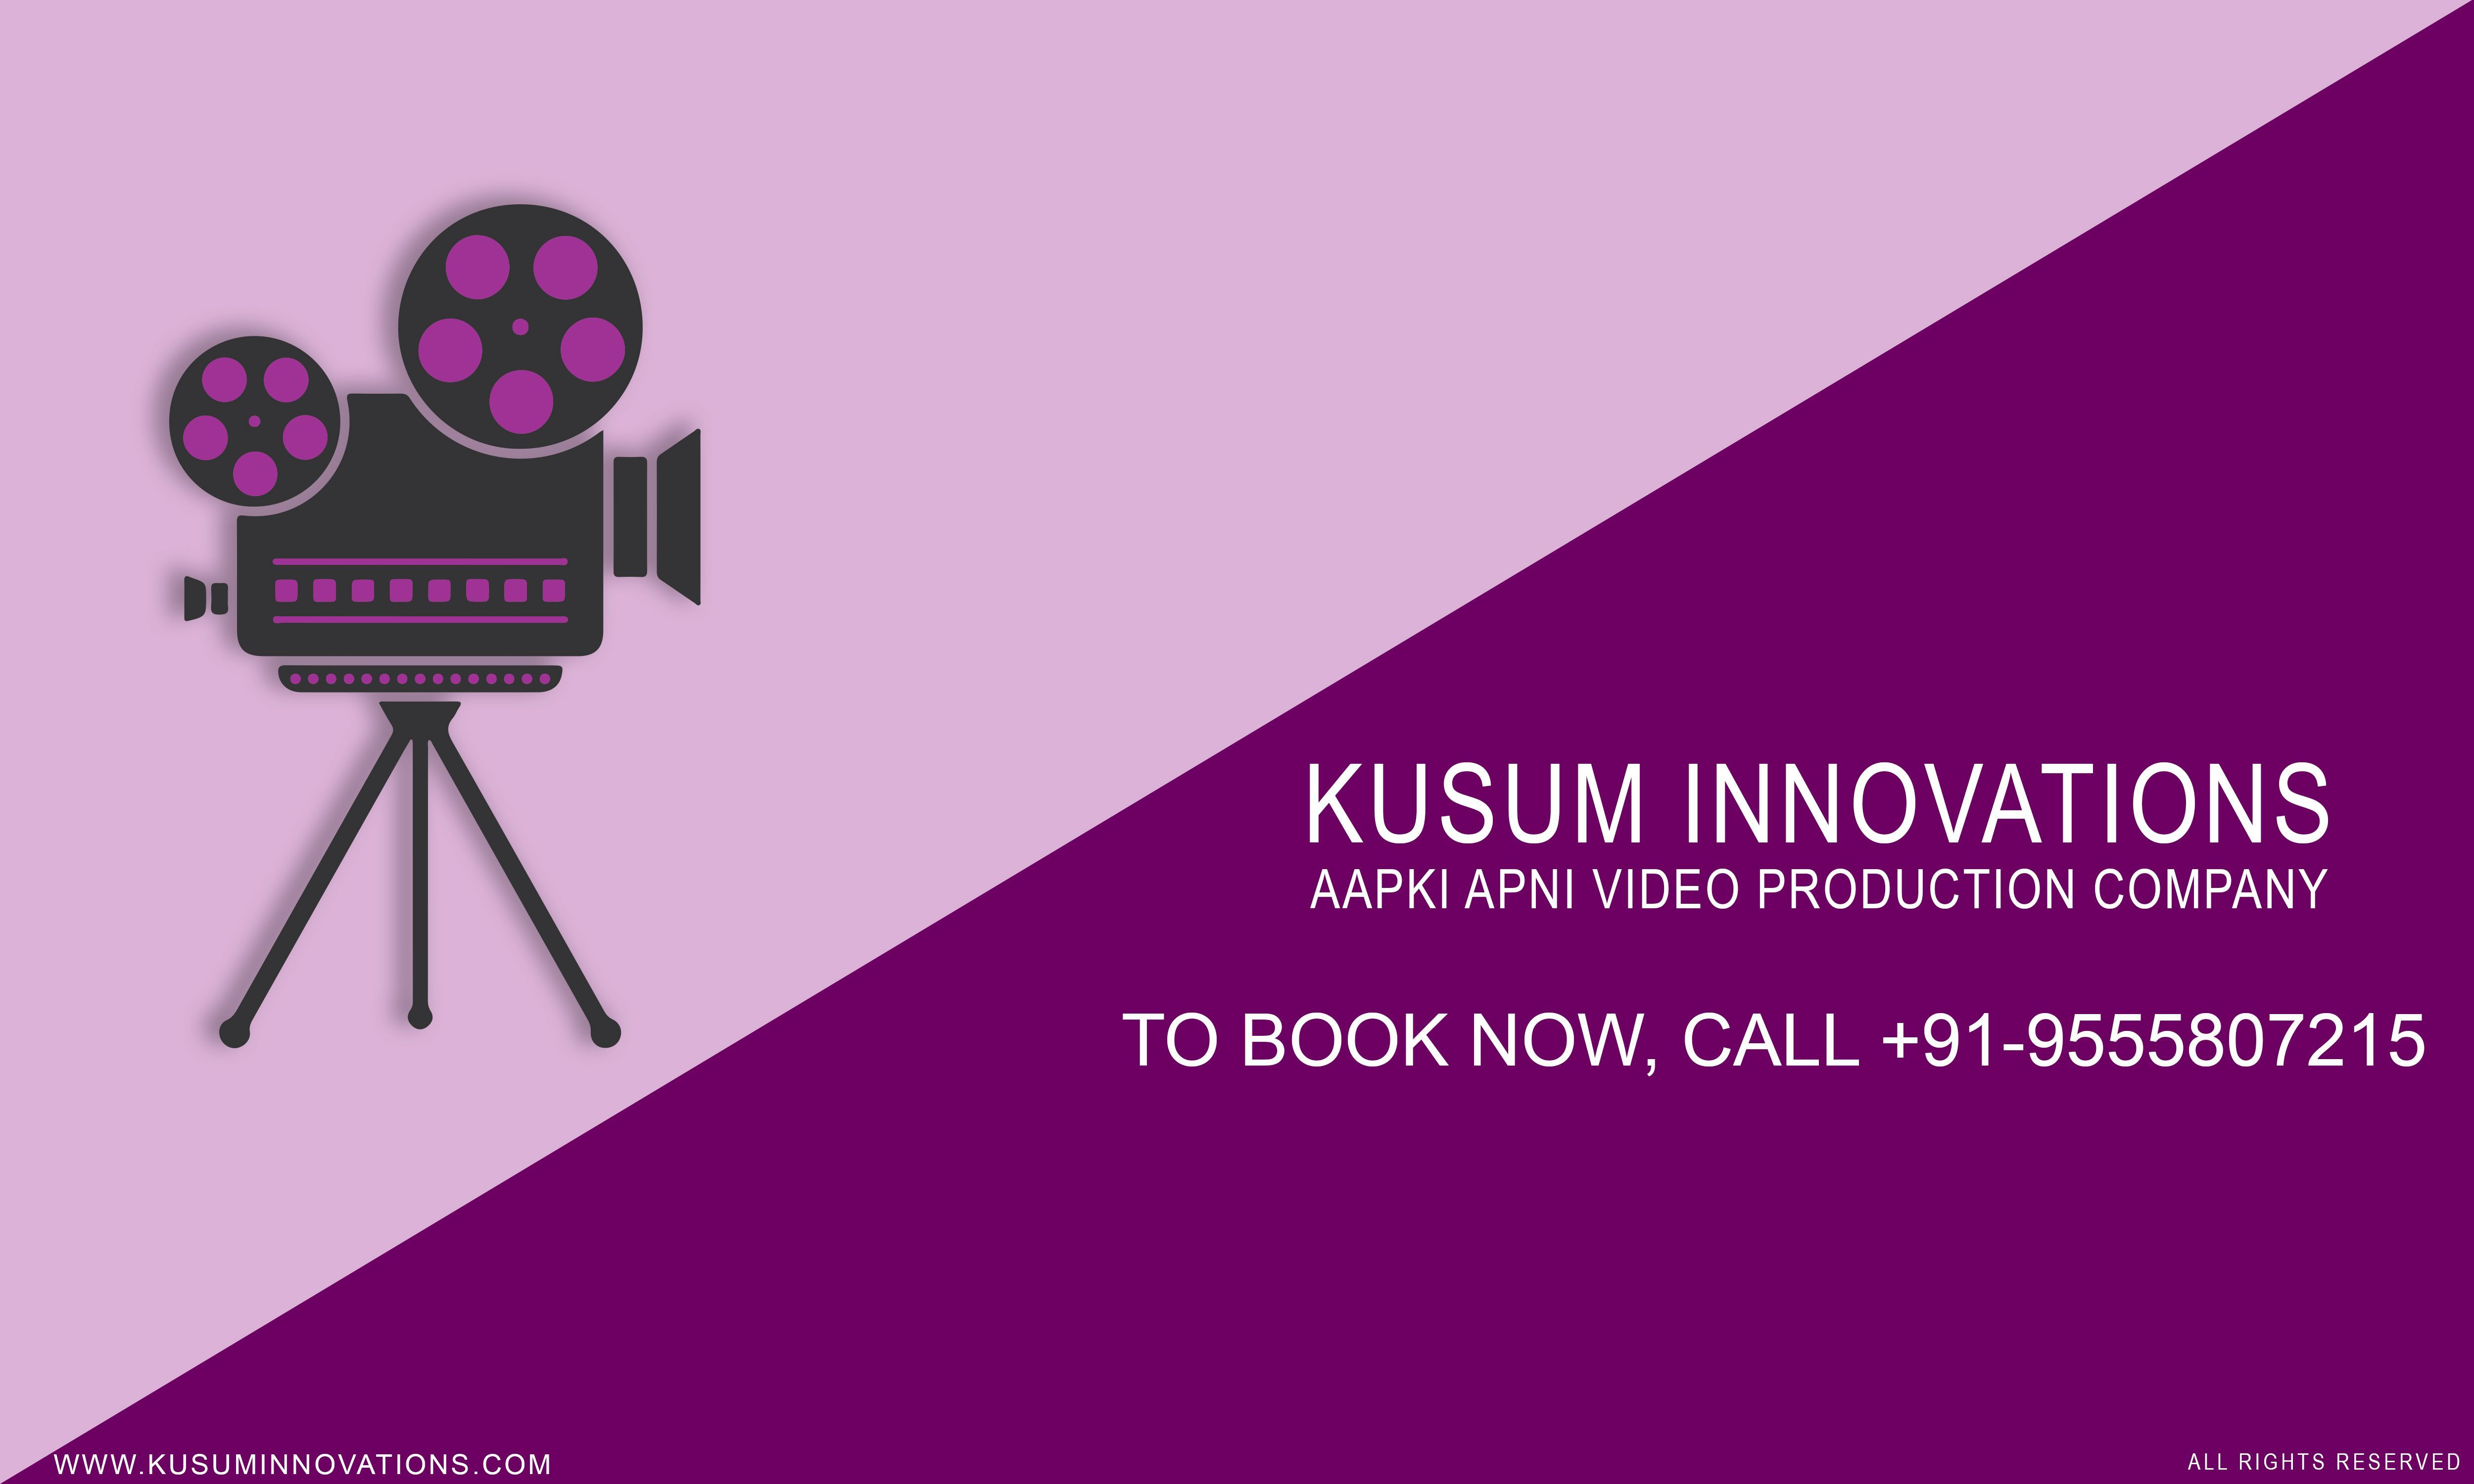 Kusum Innovations Is One Of The Fastest Growing Video Production House In Delhi NCR Offering